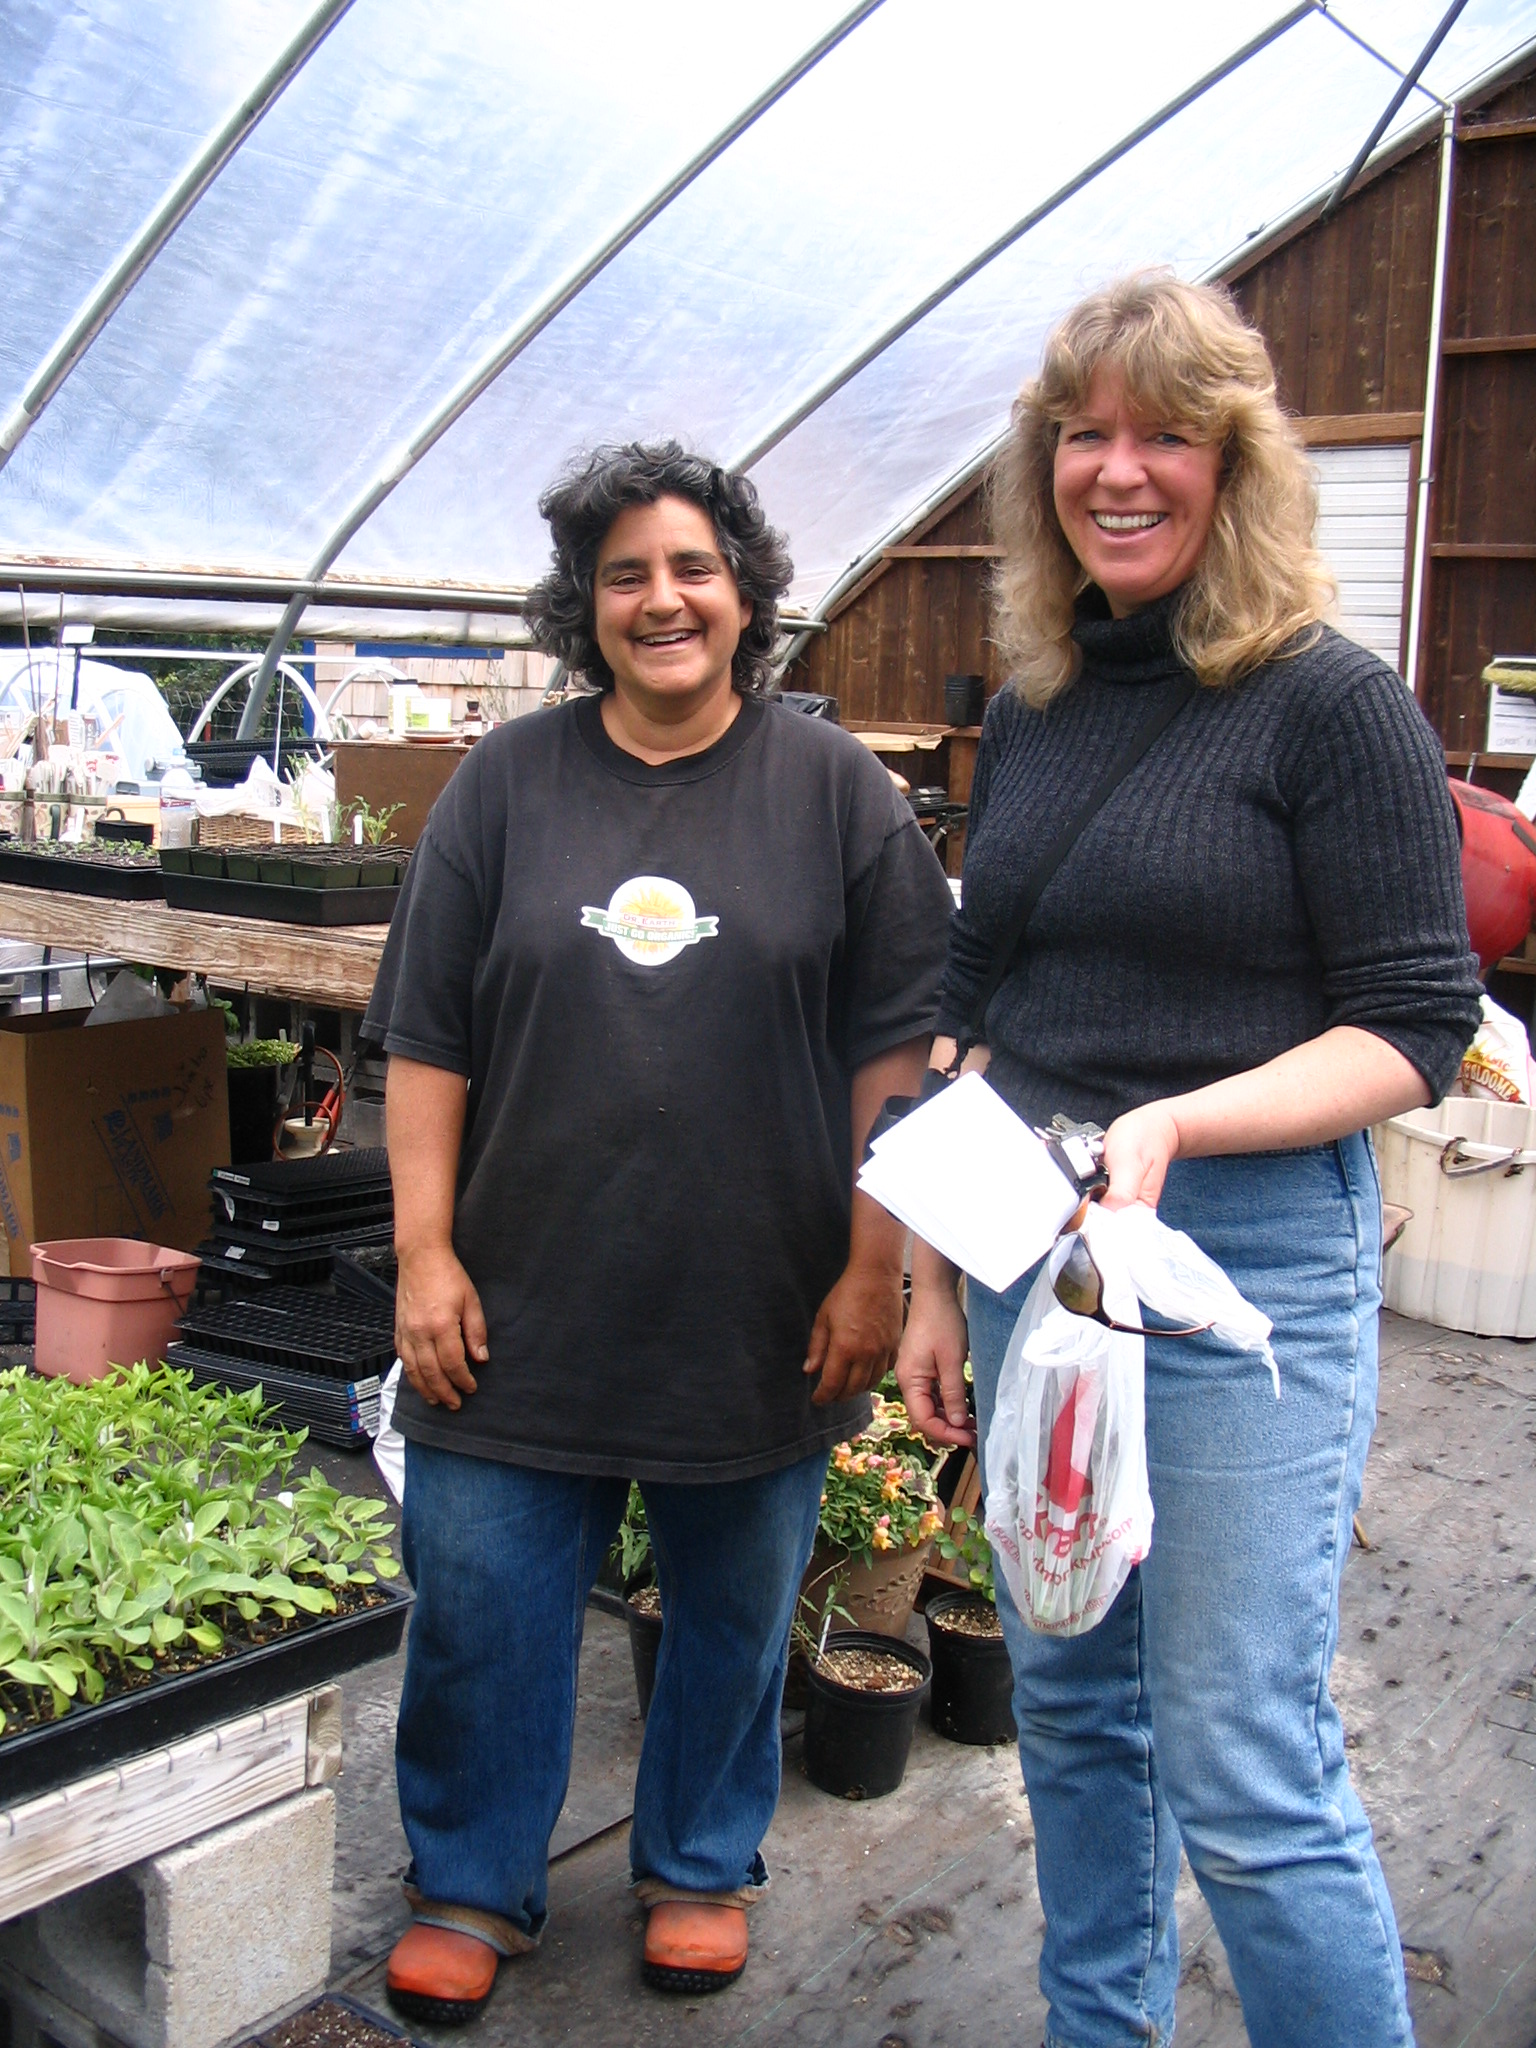 """Jennifer with the """"plant geek"""" Rita Jacinto at Flying Blue Dog farm --- after Jennifer whined about not having enough asparagus, Rita went into her field and picked some for her and Jessica...we arrived to get an interview and left with fresh asparagus -- these are two generous ladies!"""